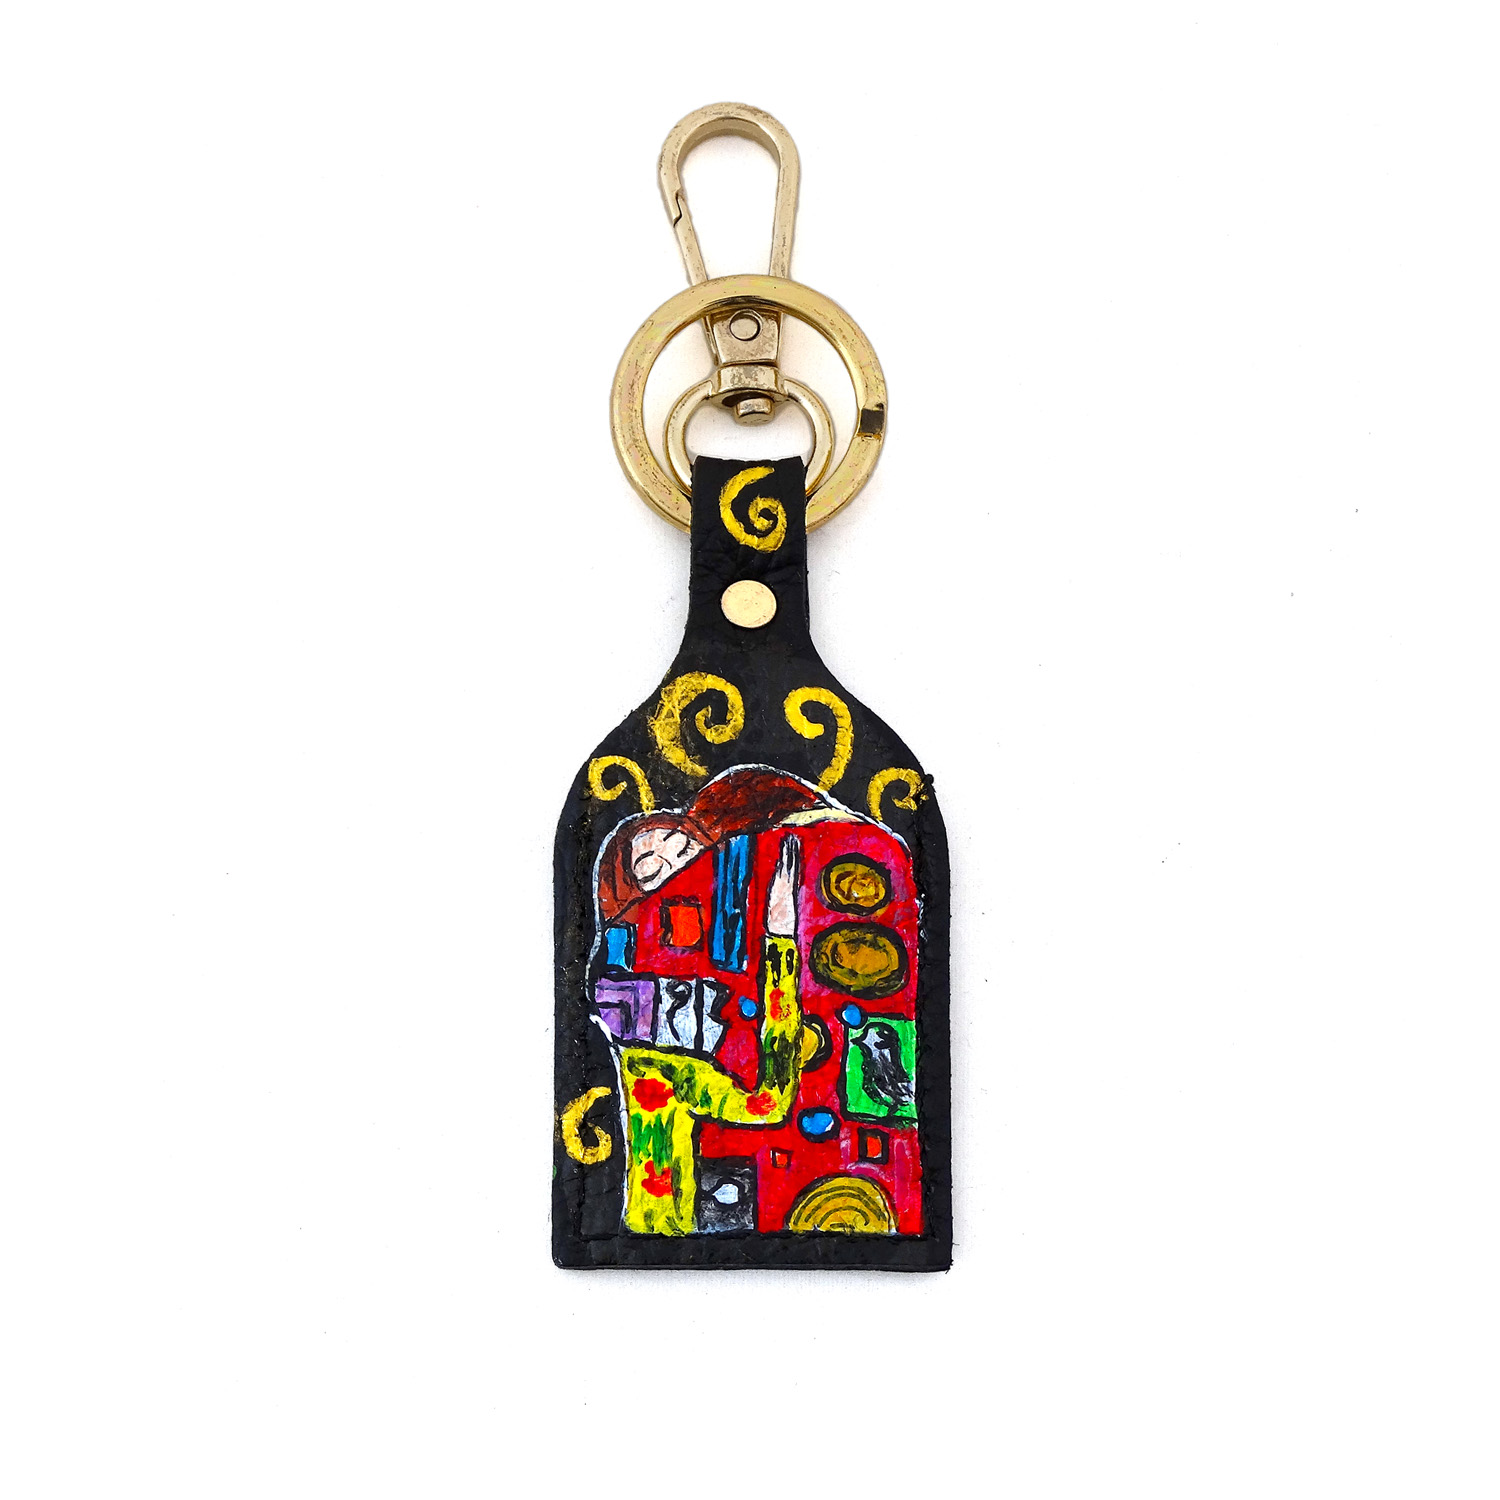 Hand painted keychain - The embrace by Klimt